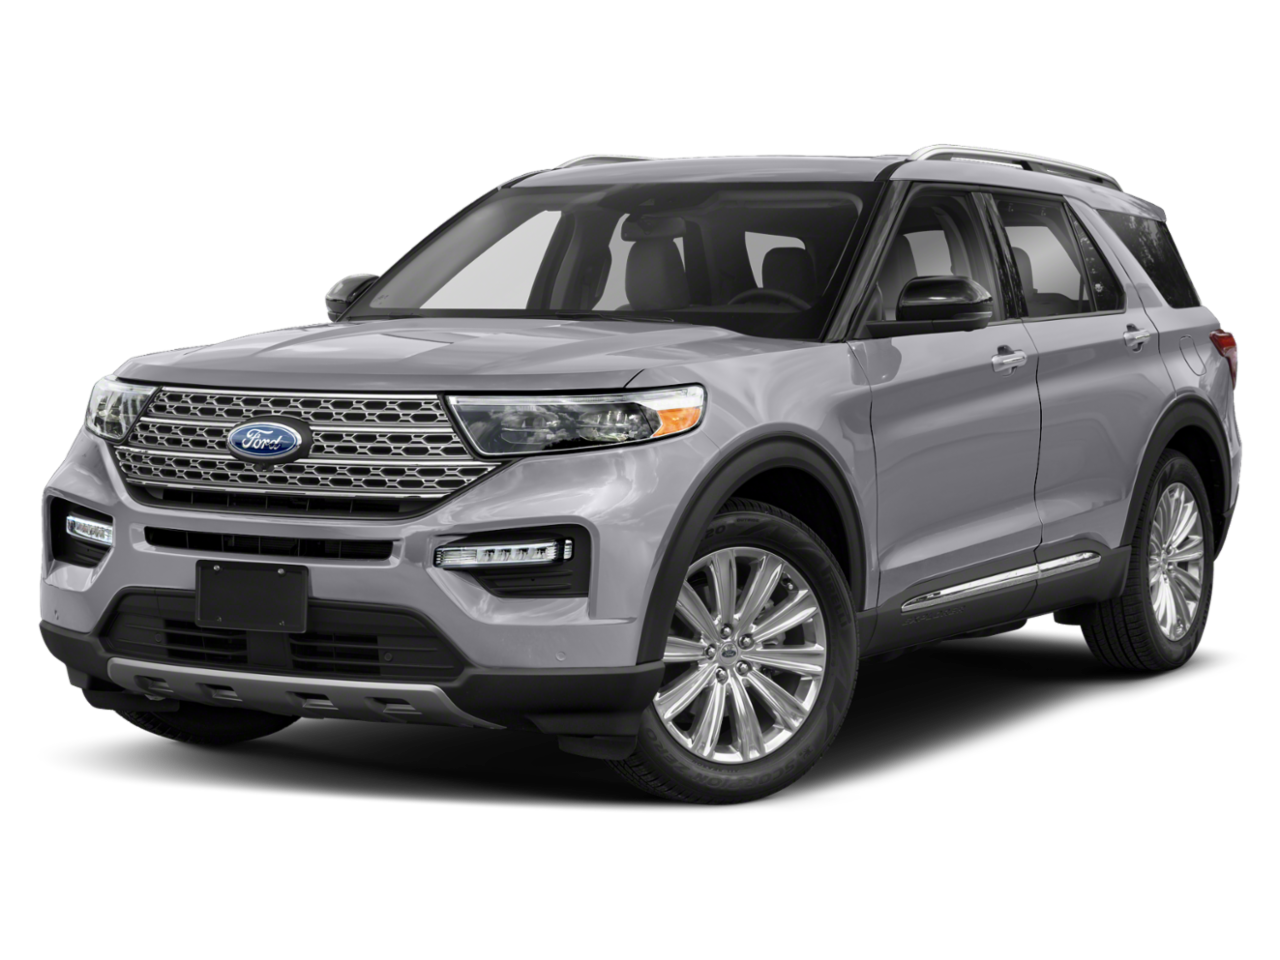 Buyer's Guide: 2021 Ford Explorer